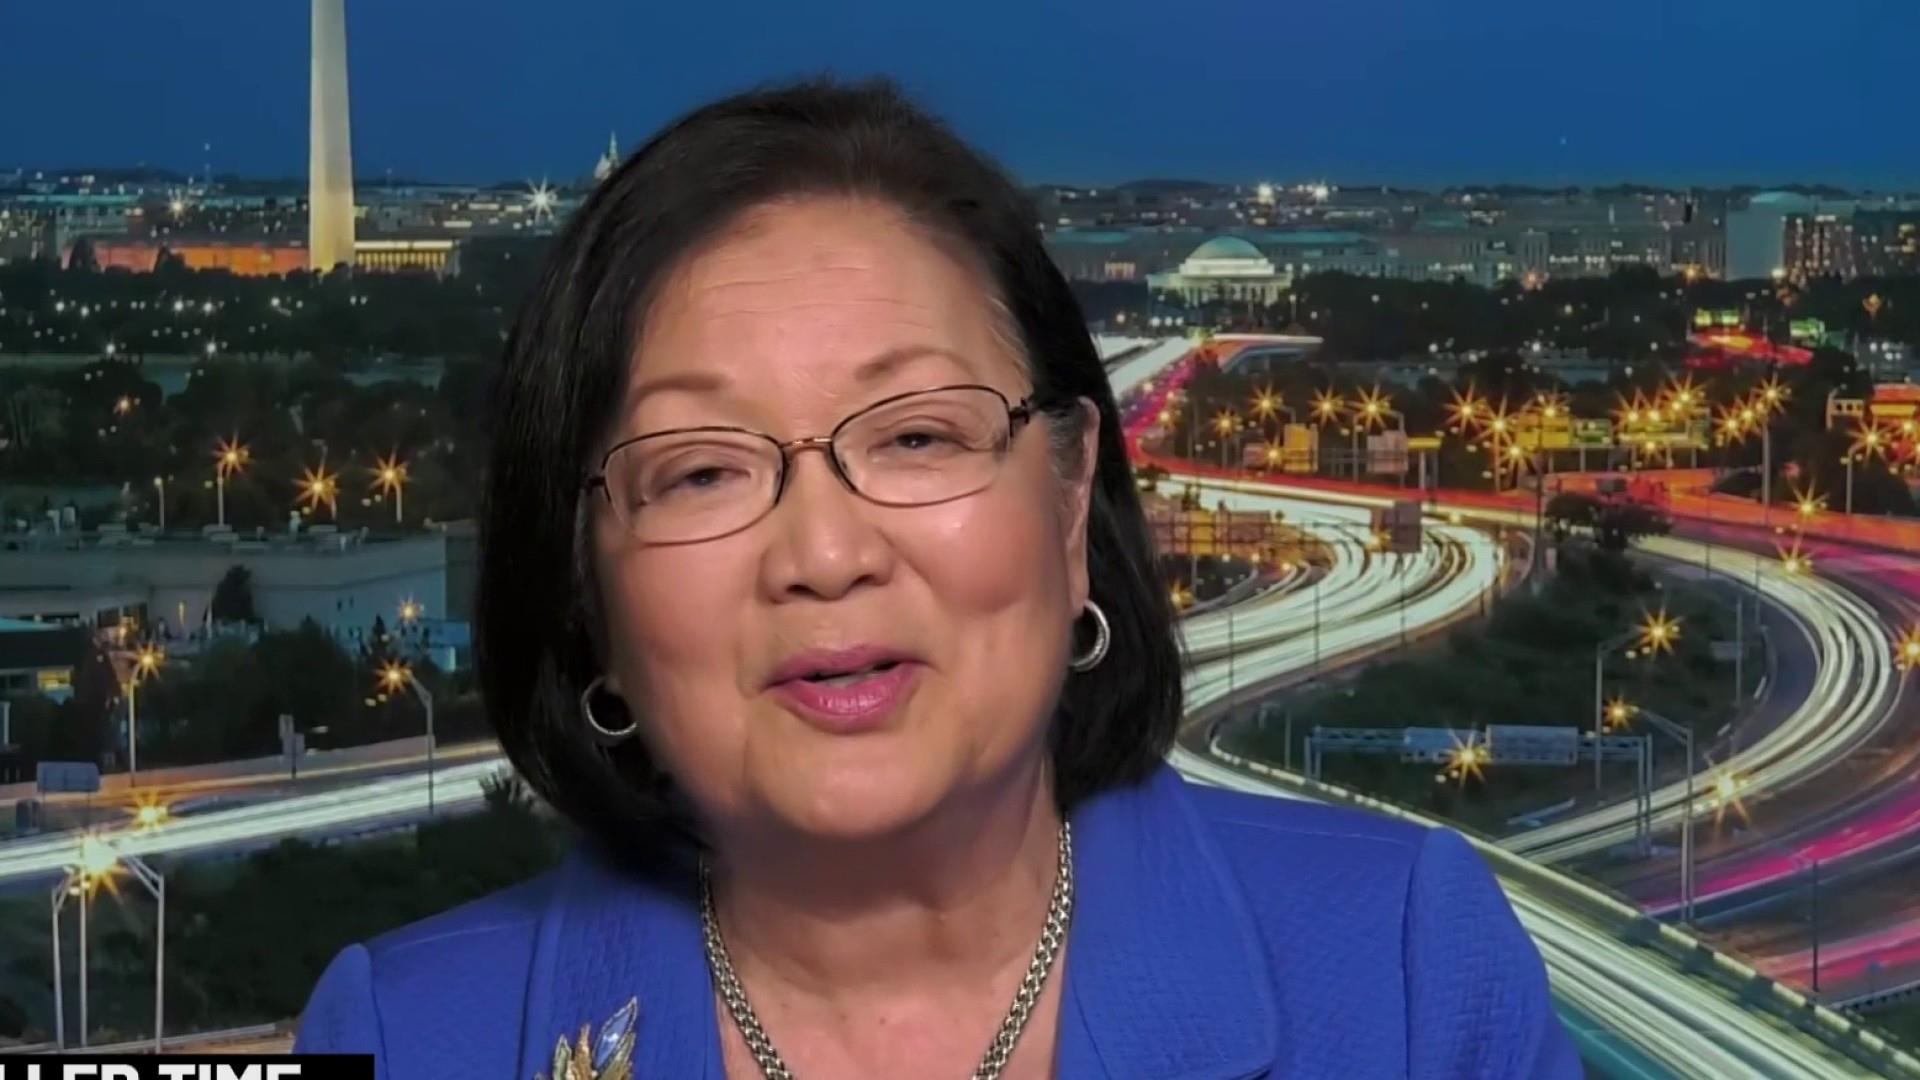 Sen. Hirono: What are Barr and Trump trying to hide?